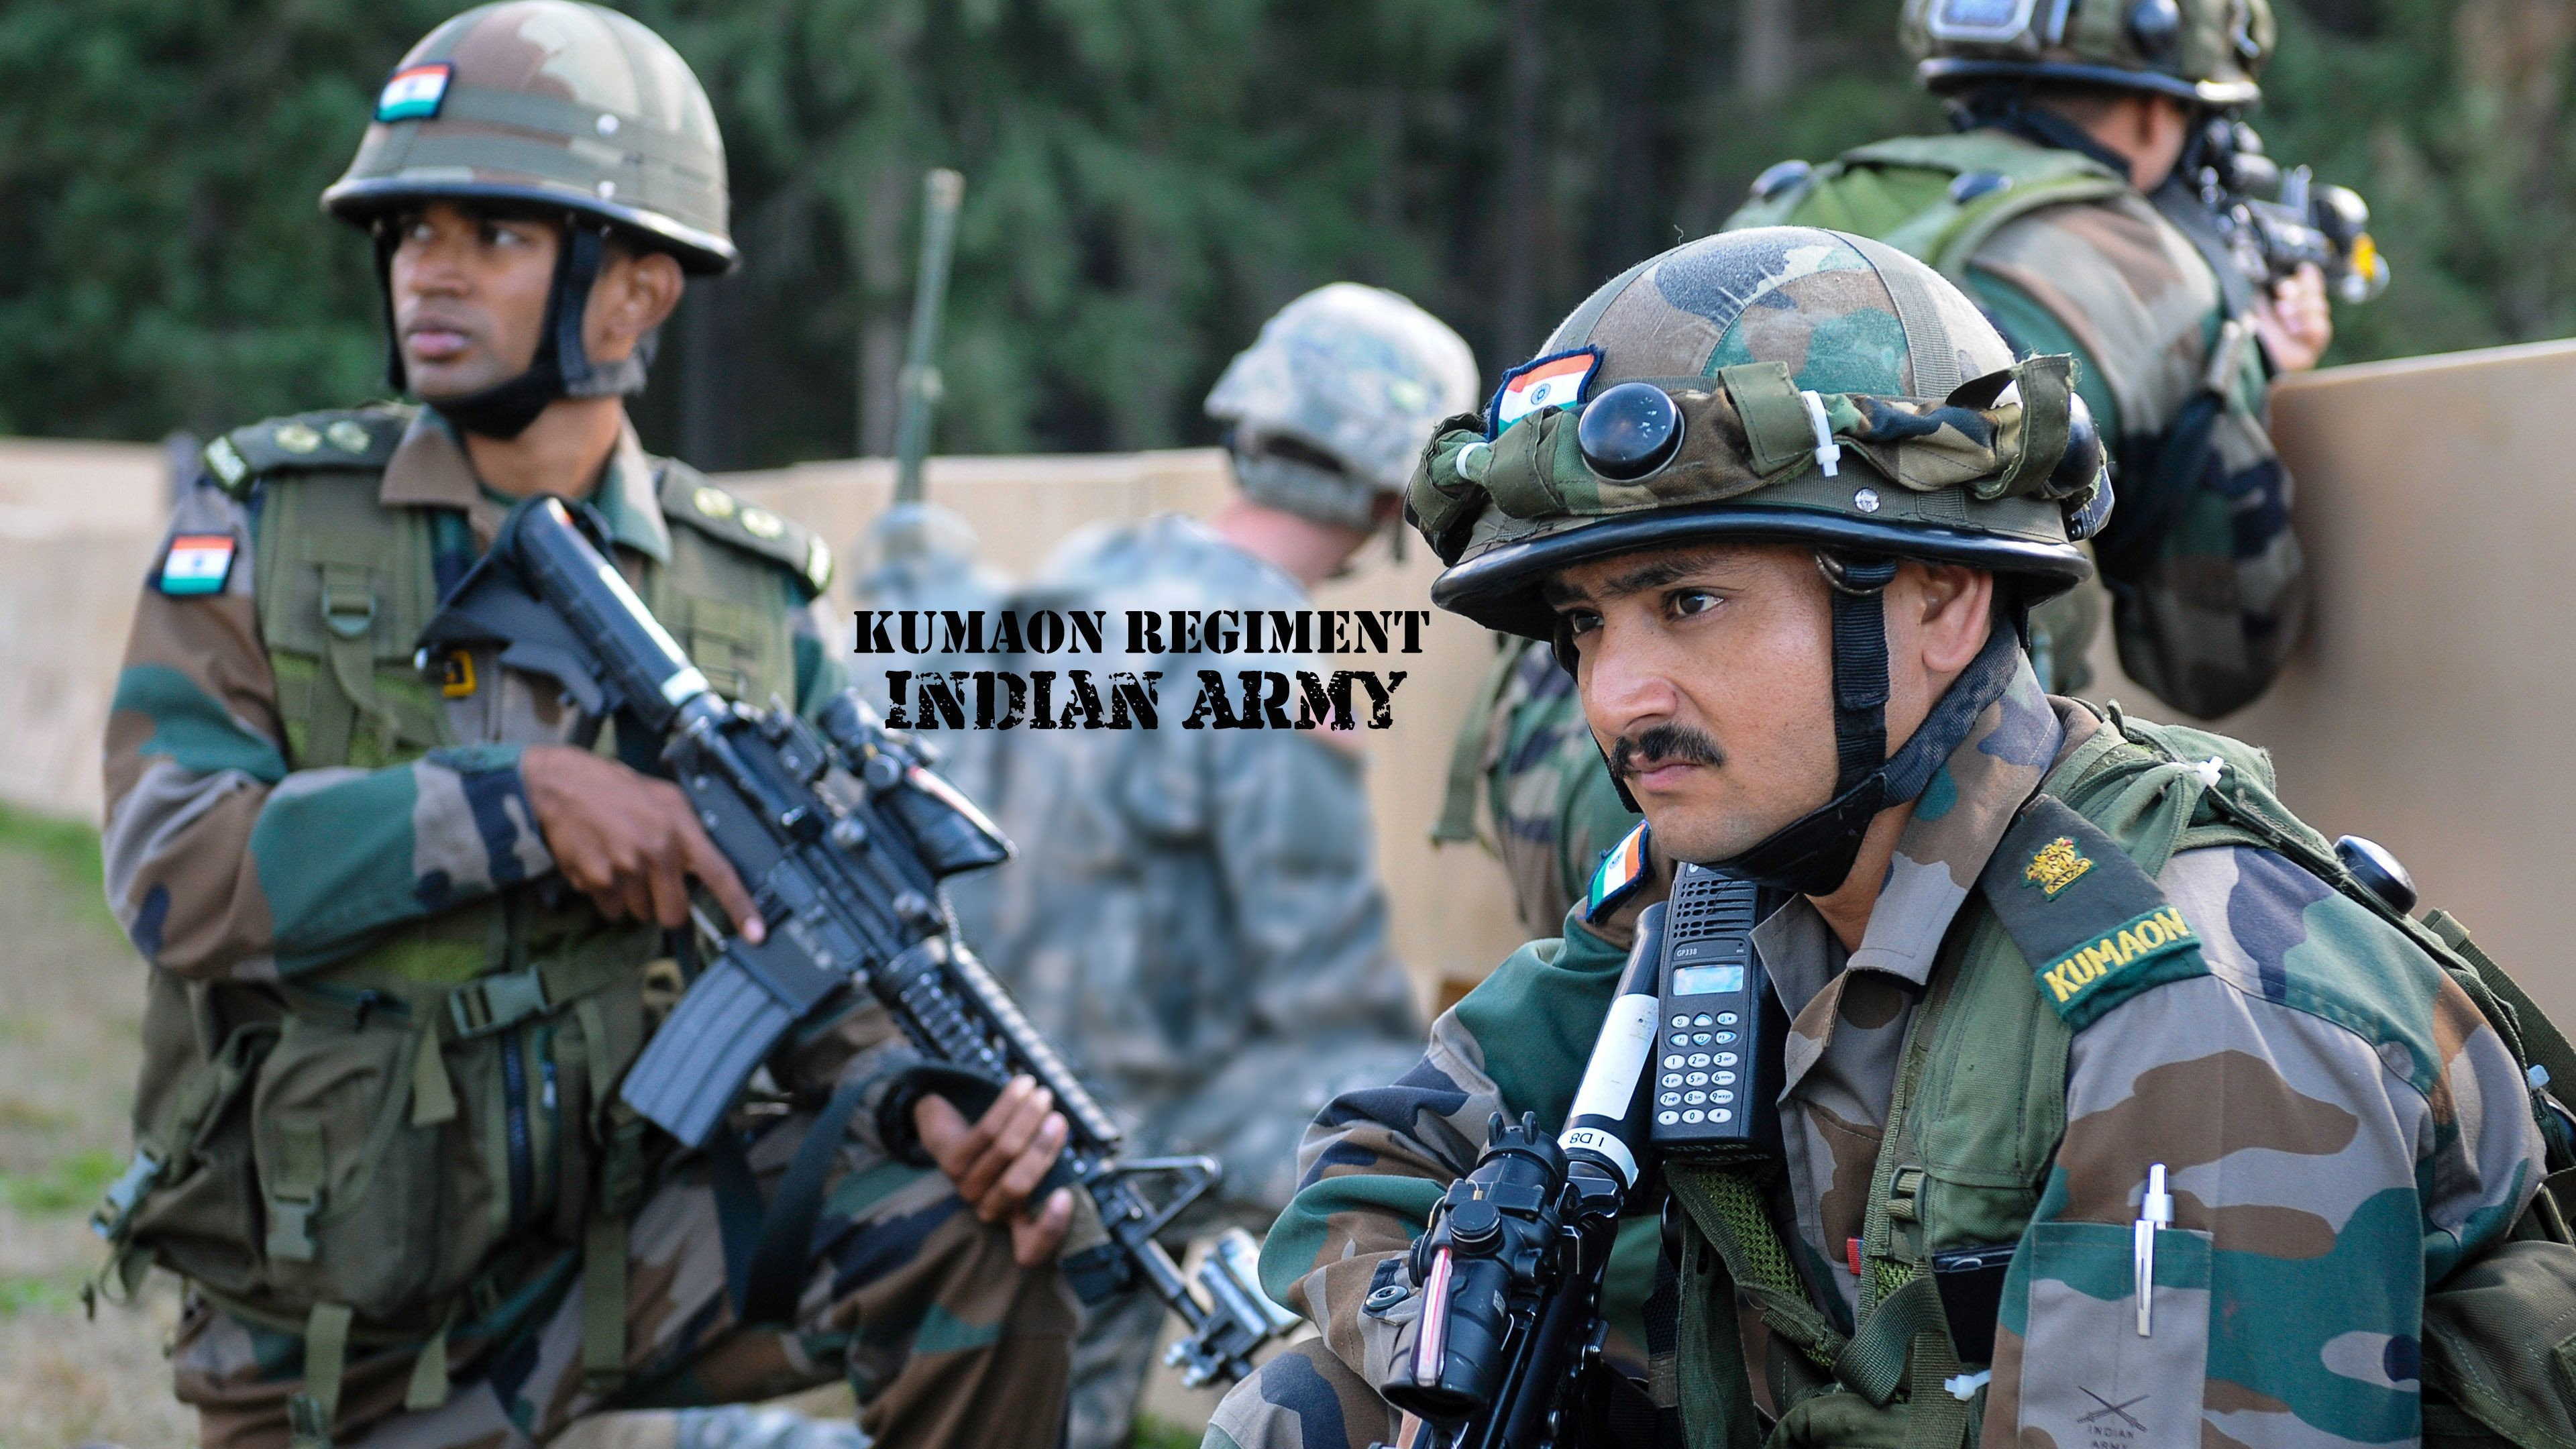 3840x2160 Indian Army Wallpaper for Mobile Phone | HD Wallpapers | Wallpapers .